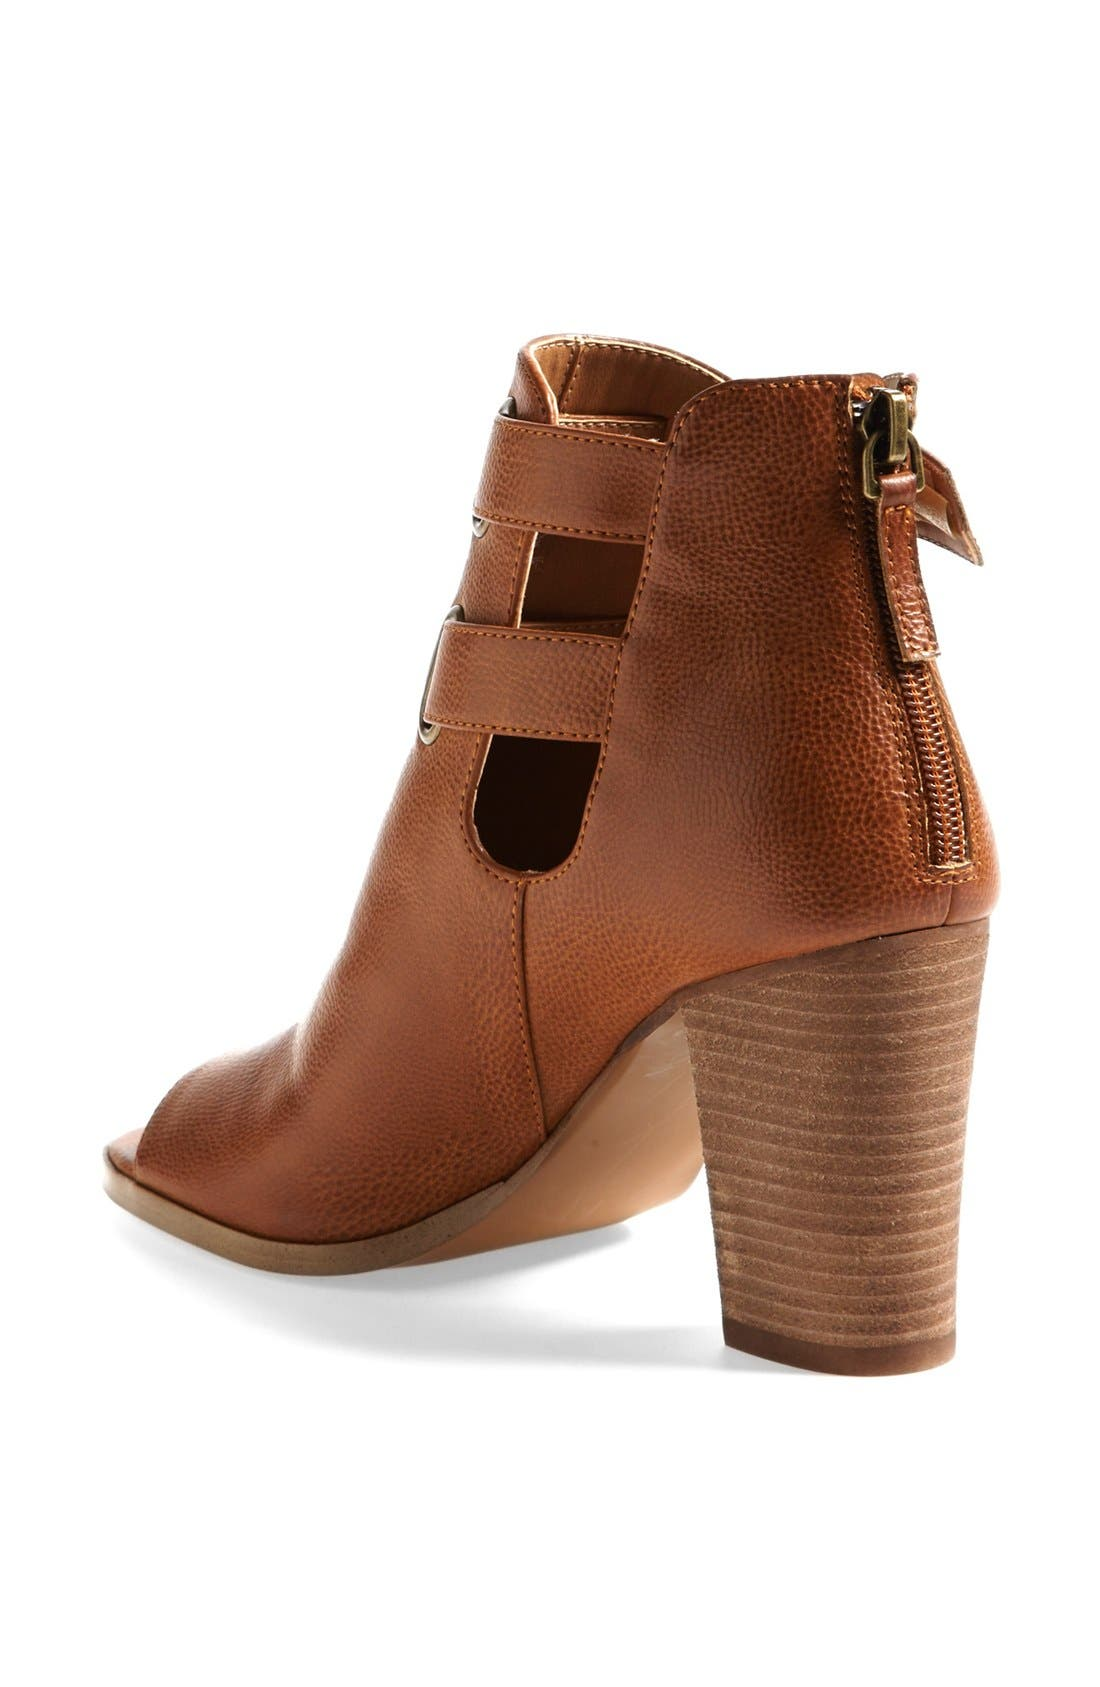 'Flexi' Bootie,                             Alternate thumbnail 2, color,                             Cognac